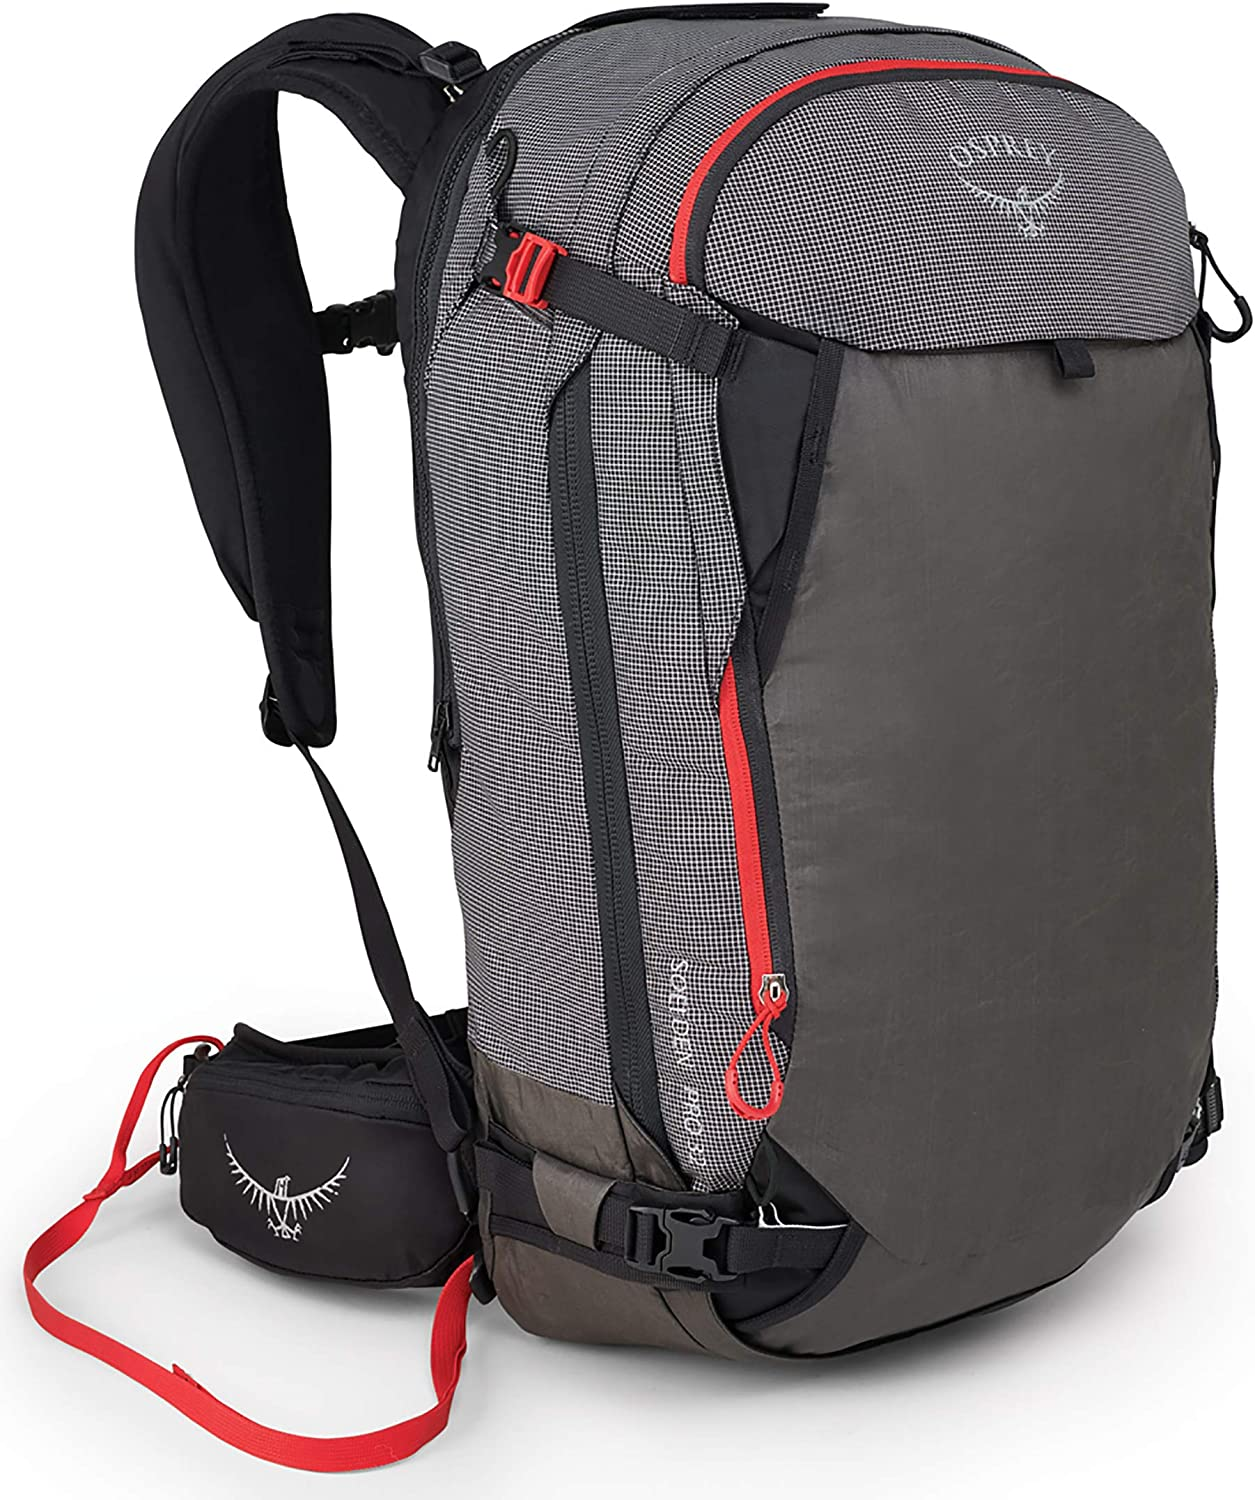 Osprey Soelden Pro Max 86% OFF 32 Men's Directly managed store Backpack Black Onyx Avalanche